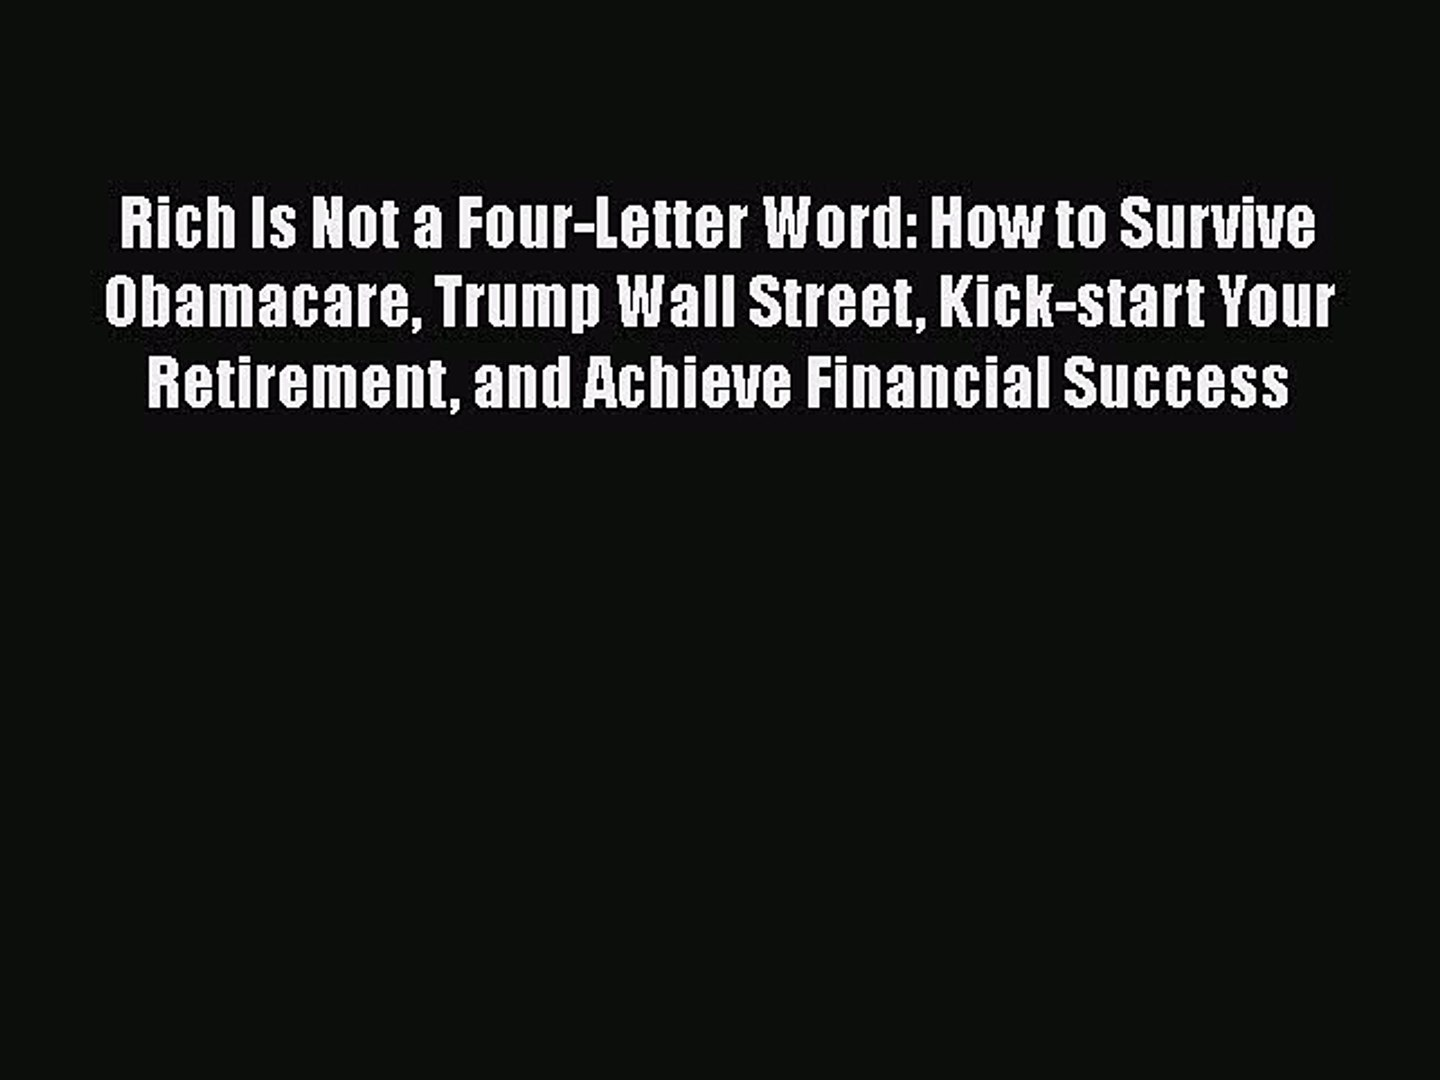 Download Rich Is Not a Four-Letter Word: How to Survive Obamacare Trump Wall Street Kick-start